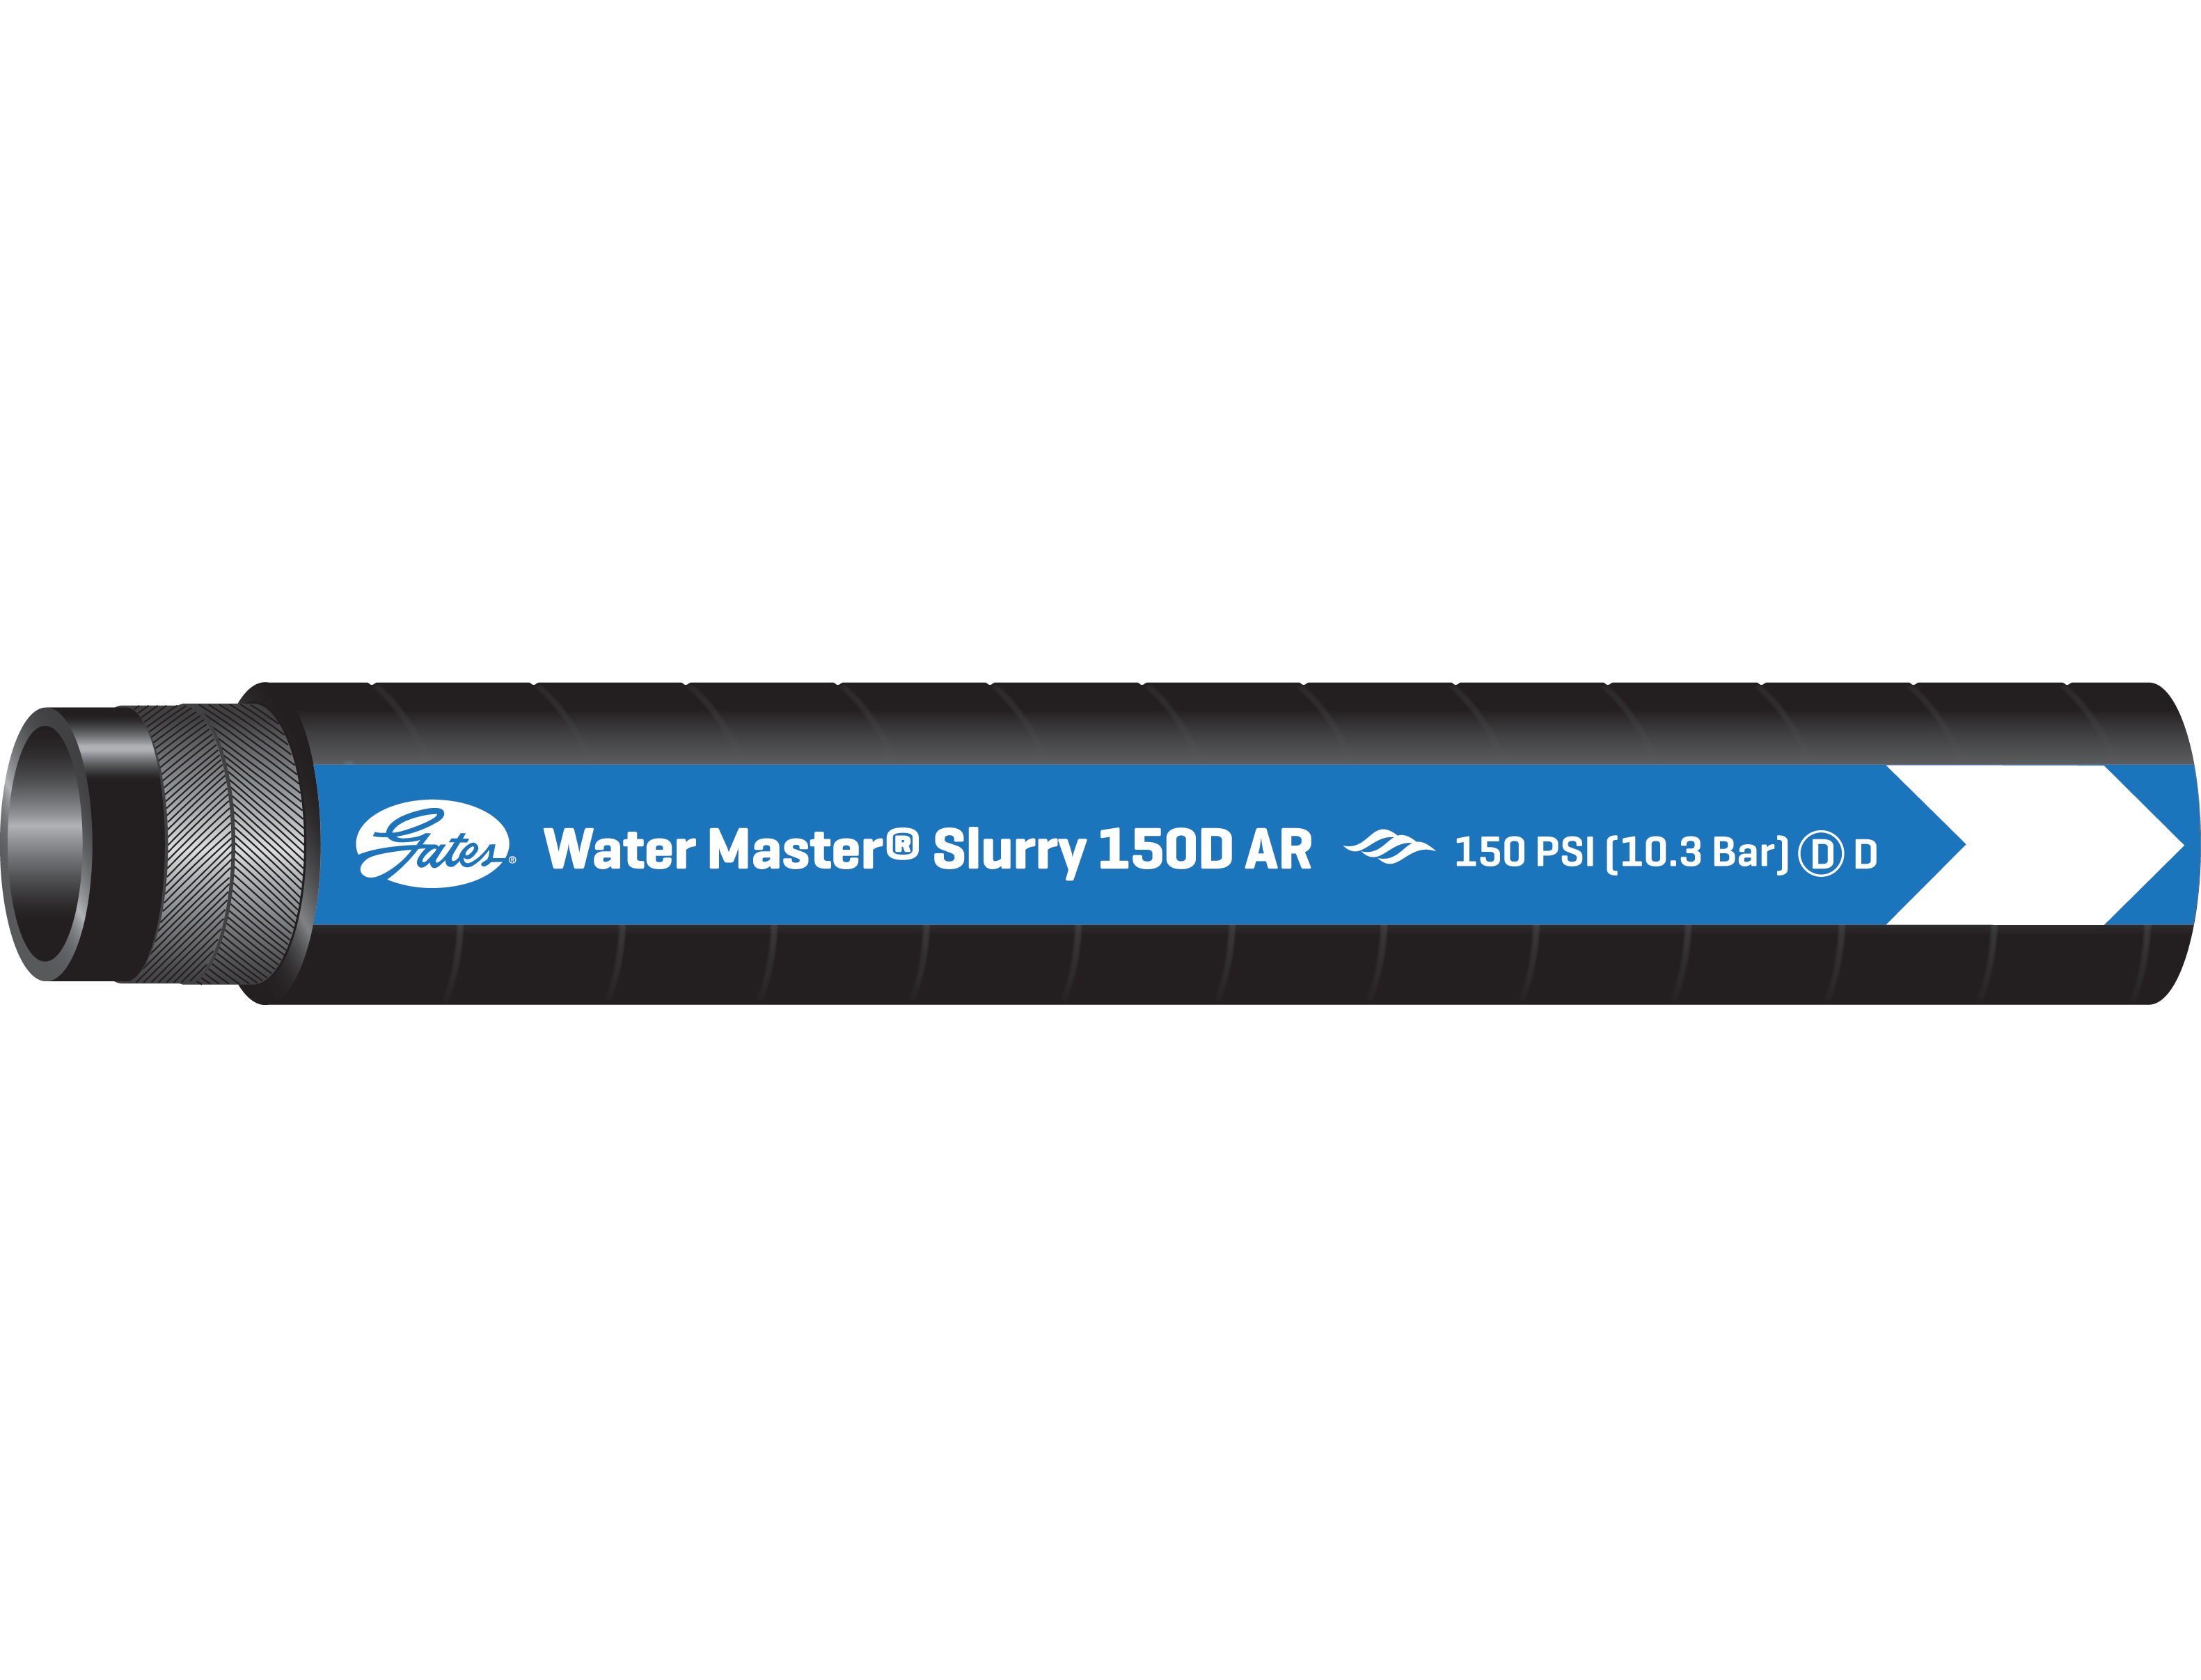 Water Master Slurry 150D AR Heavy-Duty Discharge Hose